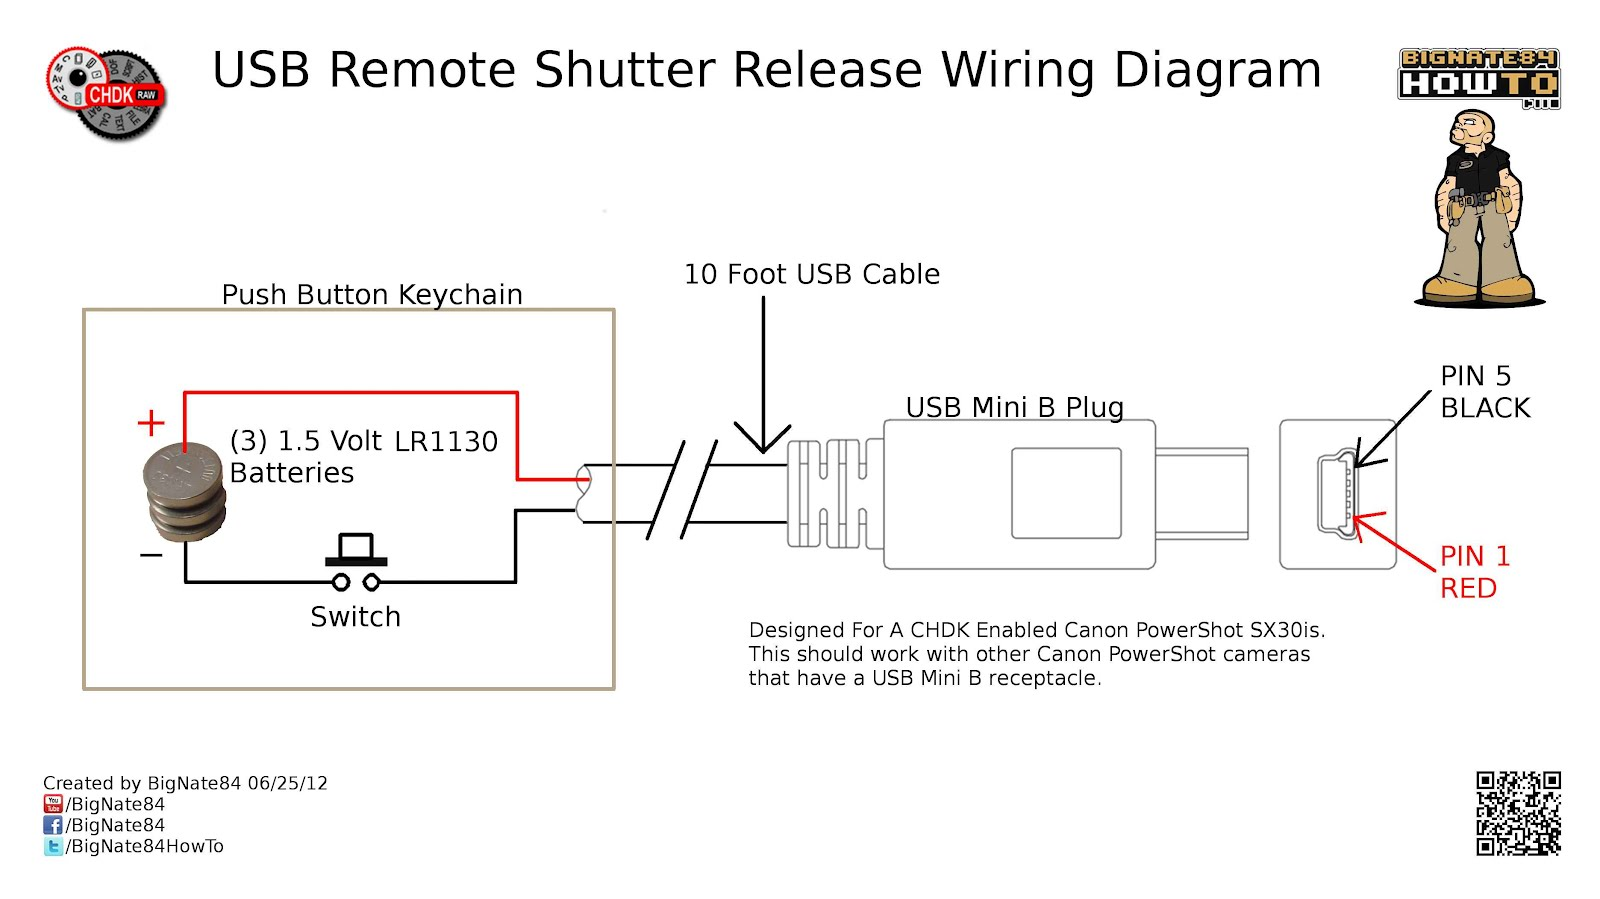 Wiring Diagram Usb To Serial Port Library Rs232 0001 Remote Shutter 1jpeg